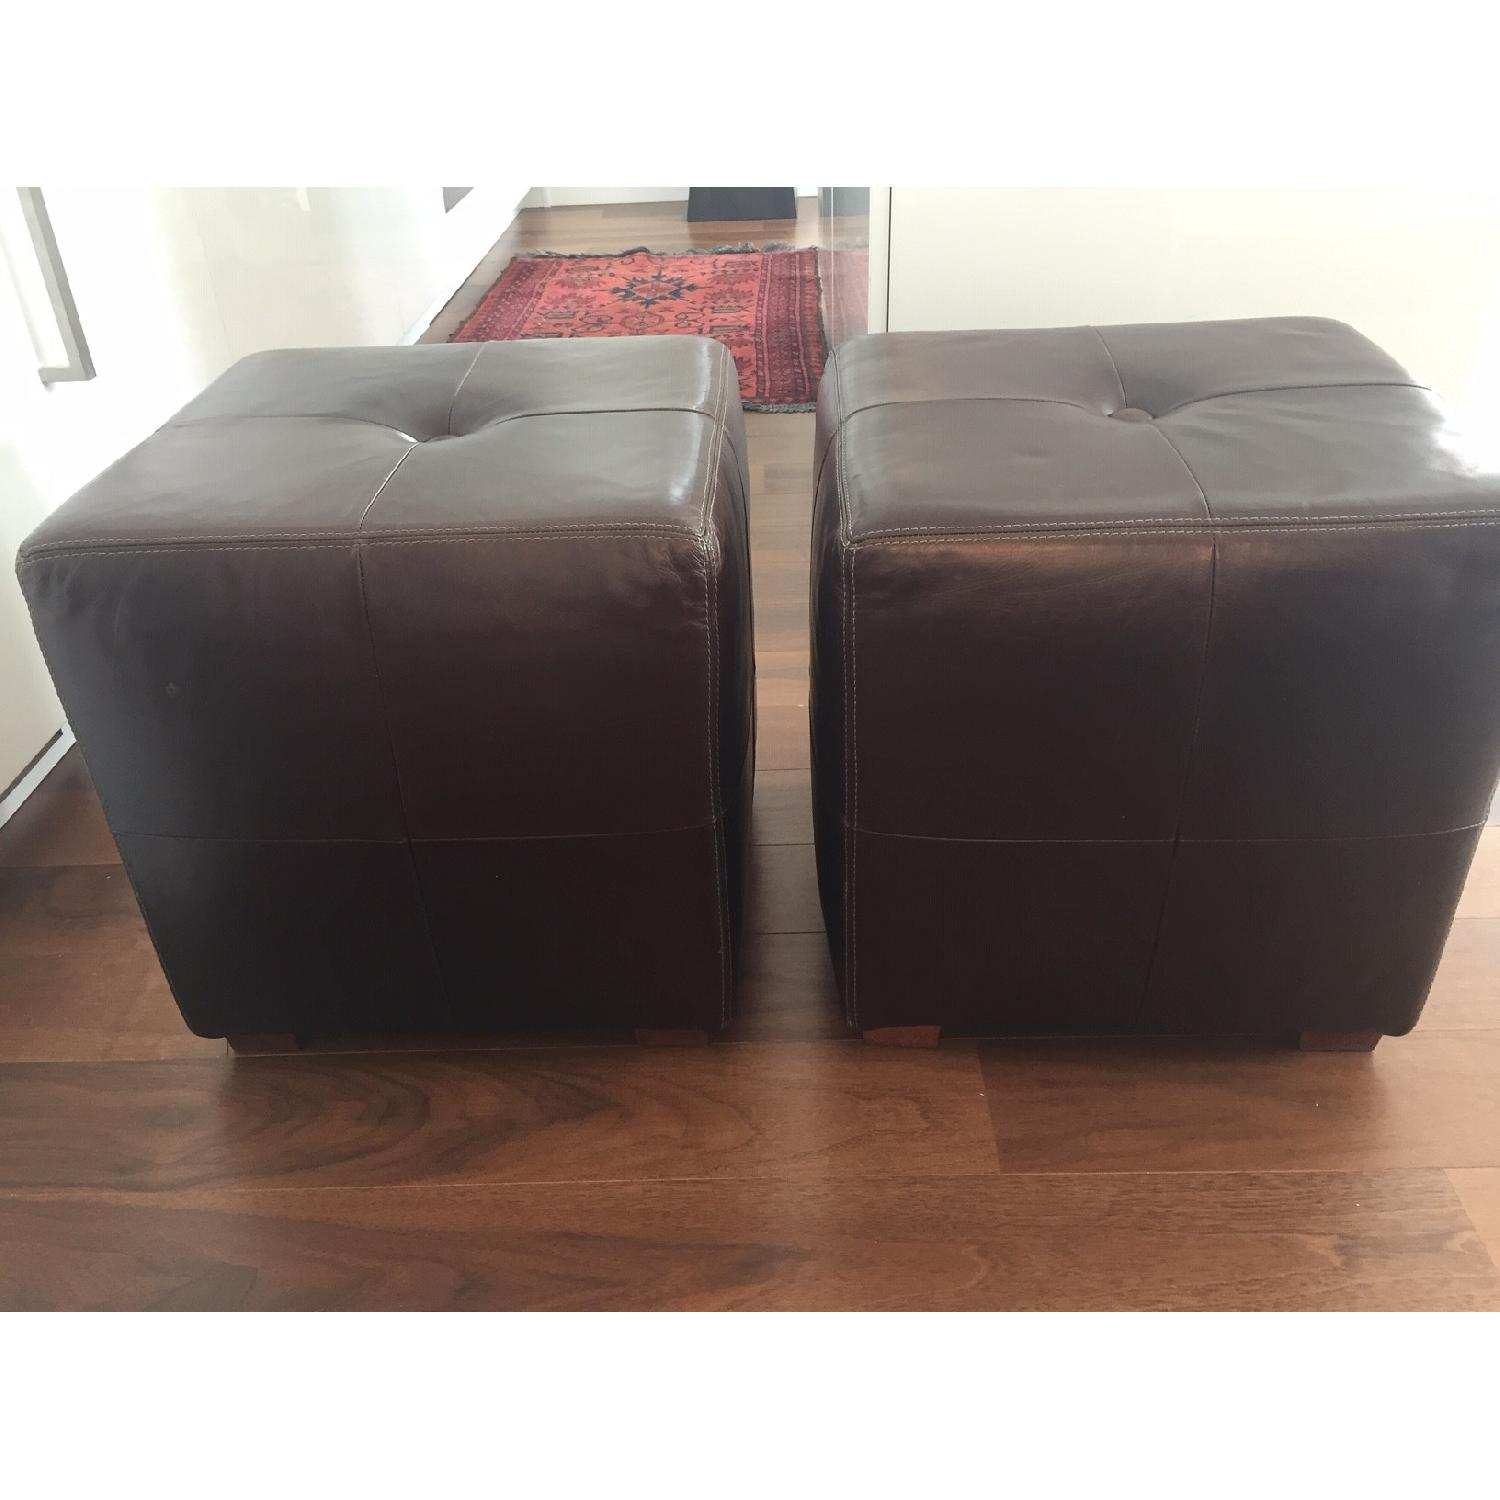 Pottery Barn Leather Square Ottoman - image-1